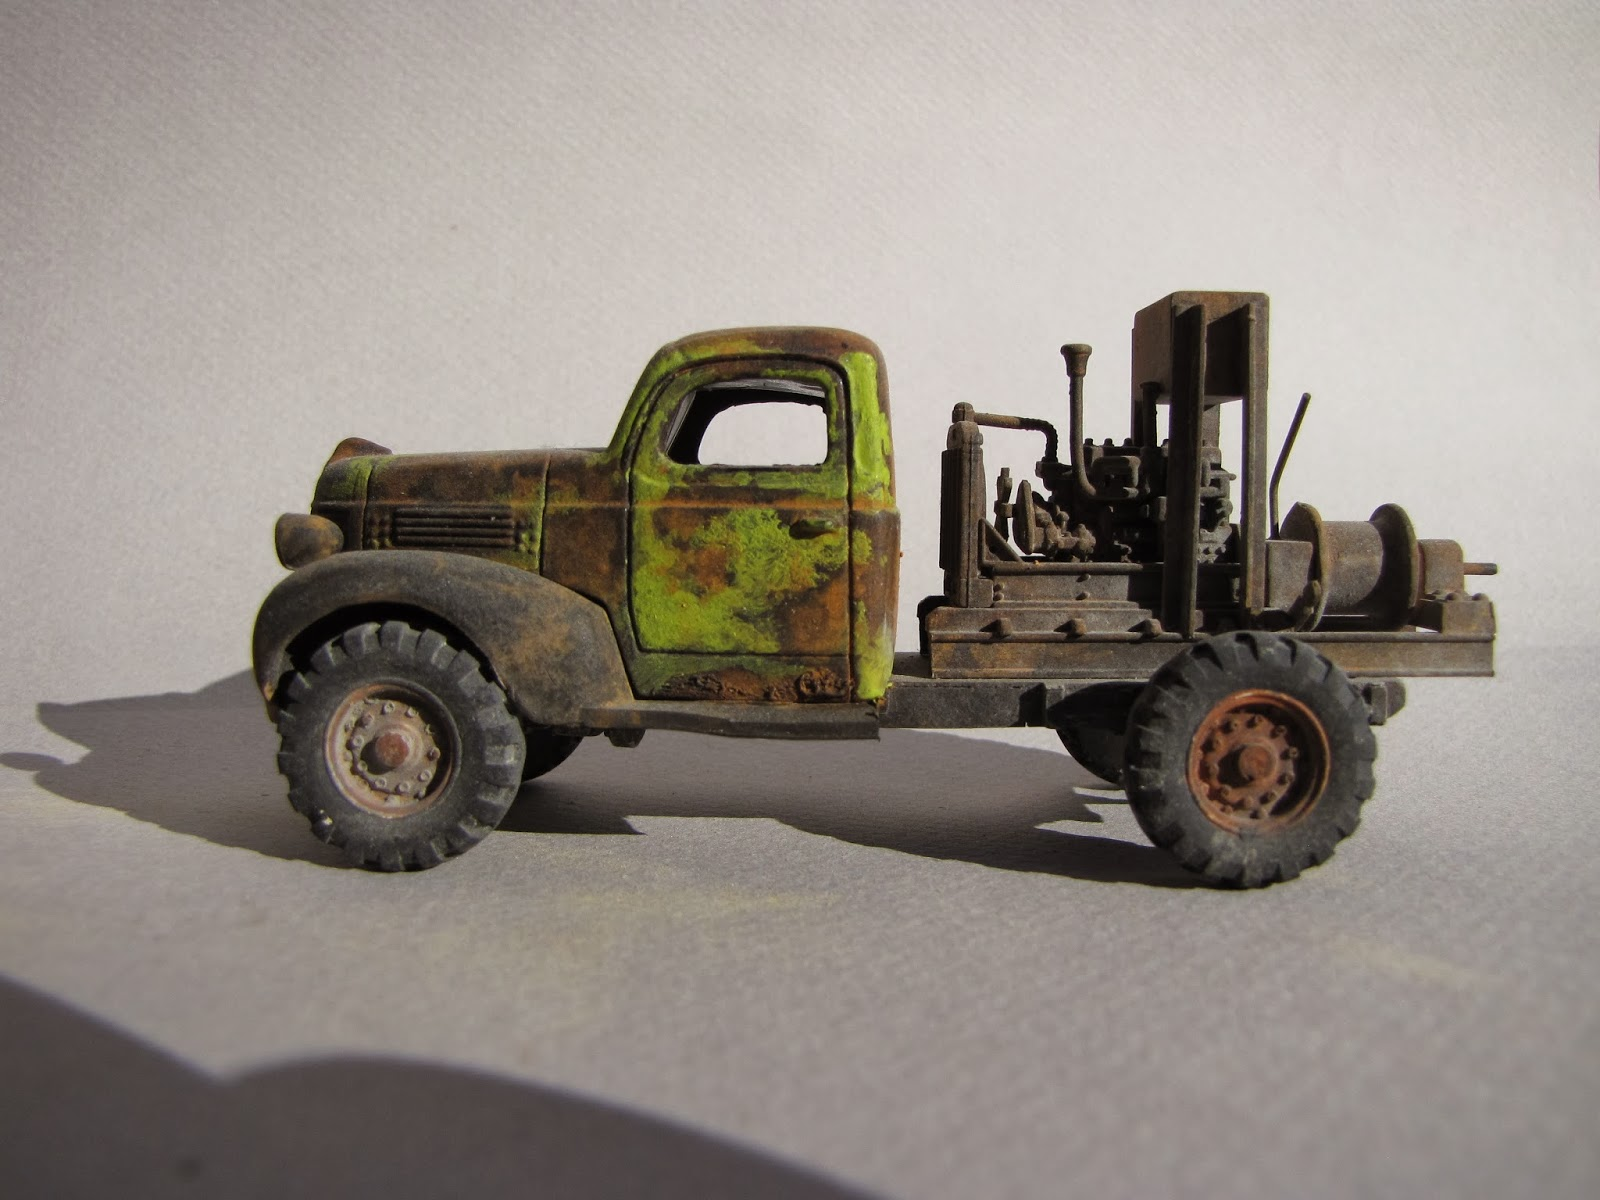 Thomas A Yorke O Scale Models Used Cars For Sale 1941 Plymouth This Group Shows Truck With Winch 1934 Sedan The 1929 Again 1938 Buick Packard Ford And Last Two